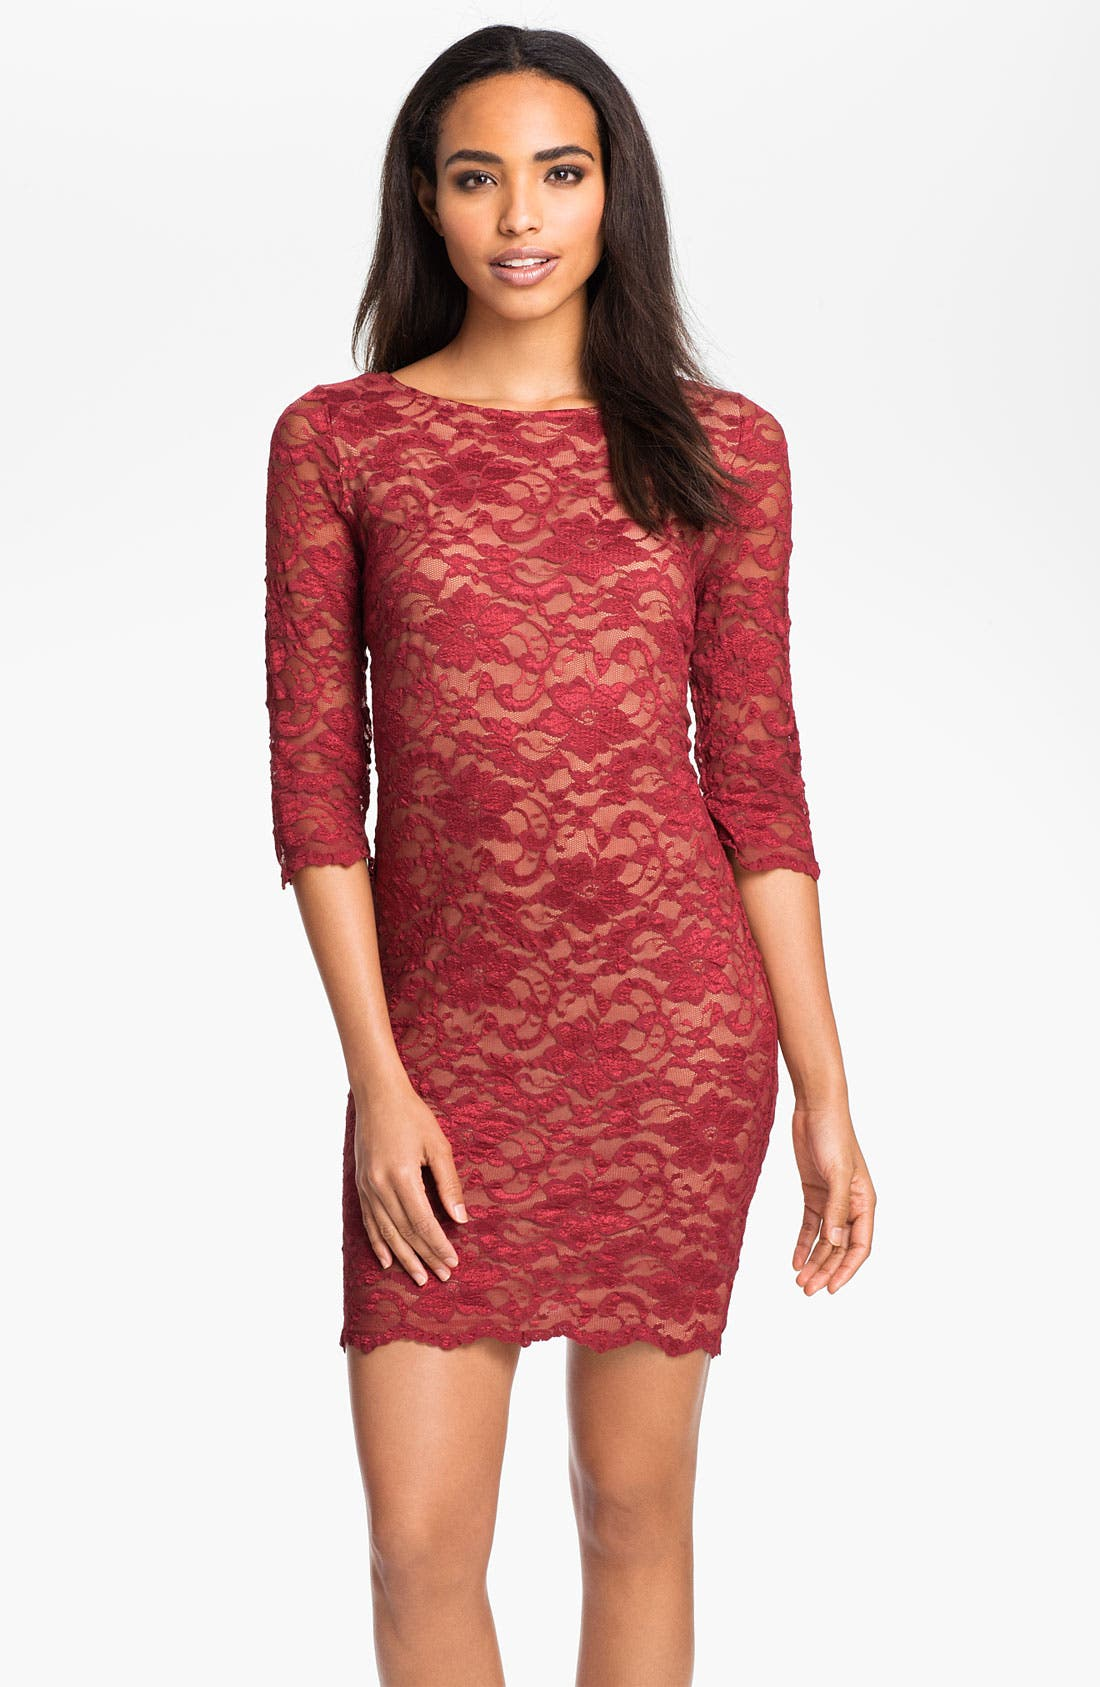 Main Image - Alexia Admor Lace Overlay Dress